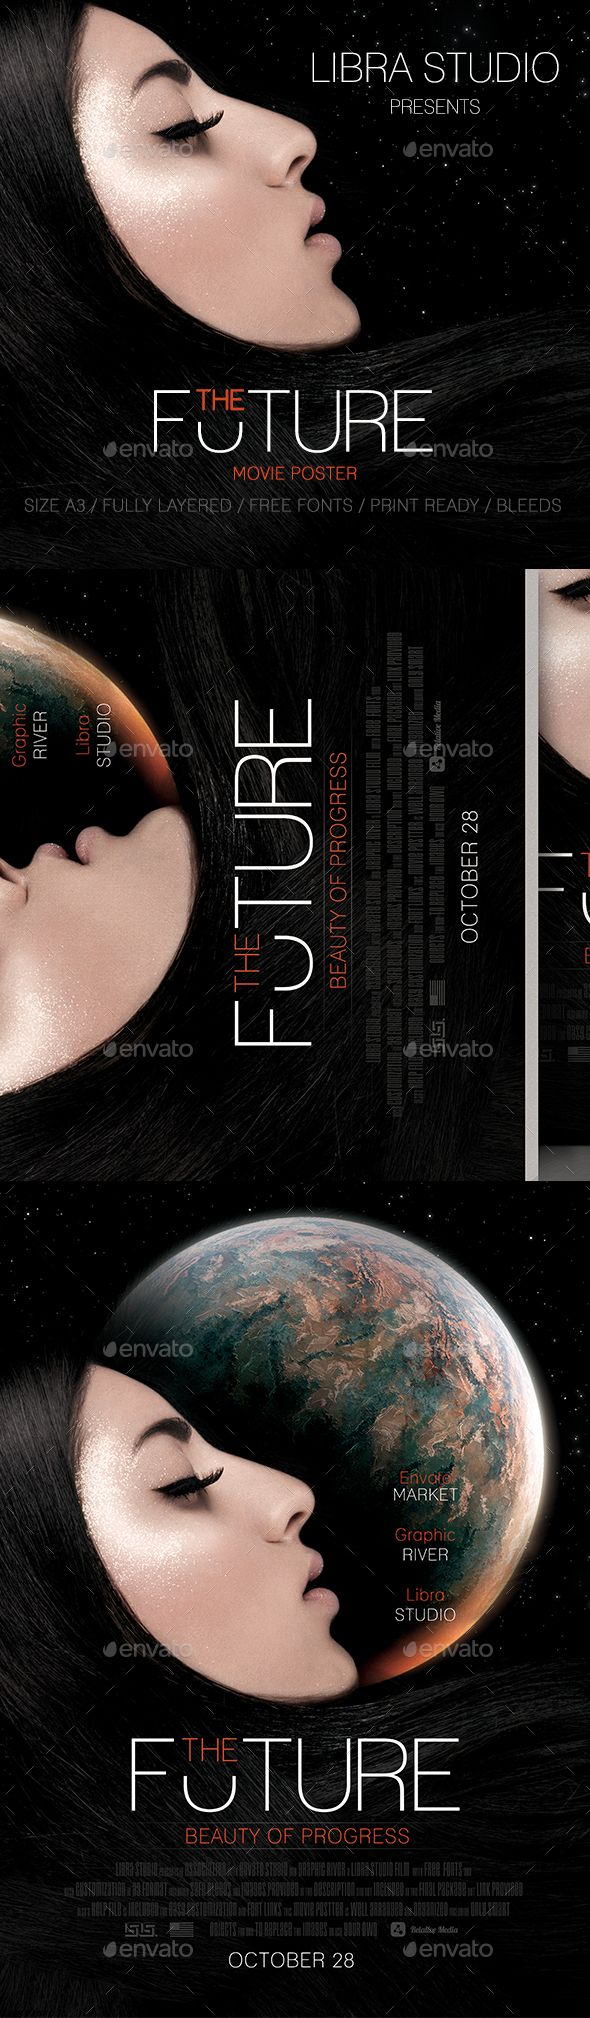 #The Future Movie Poster Template - #Future #Movie #Poster #Template #Miscellaneous #Event #Design. Download here: https://graphicriver.net/item/the-future-movie-poster/19477540?ref=yinkira